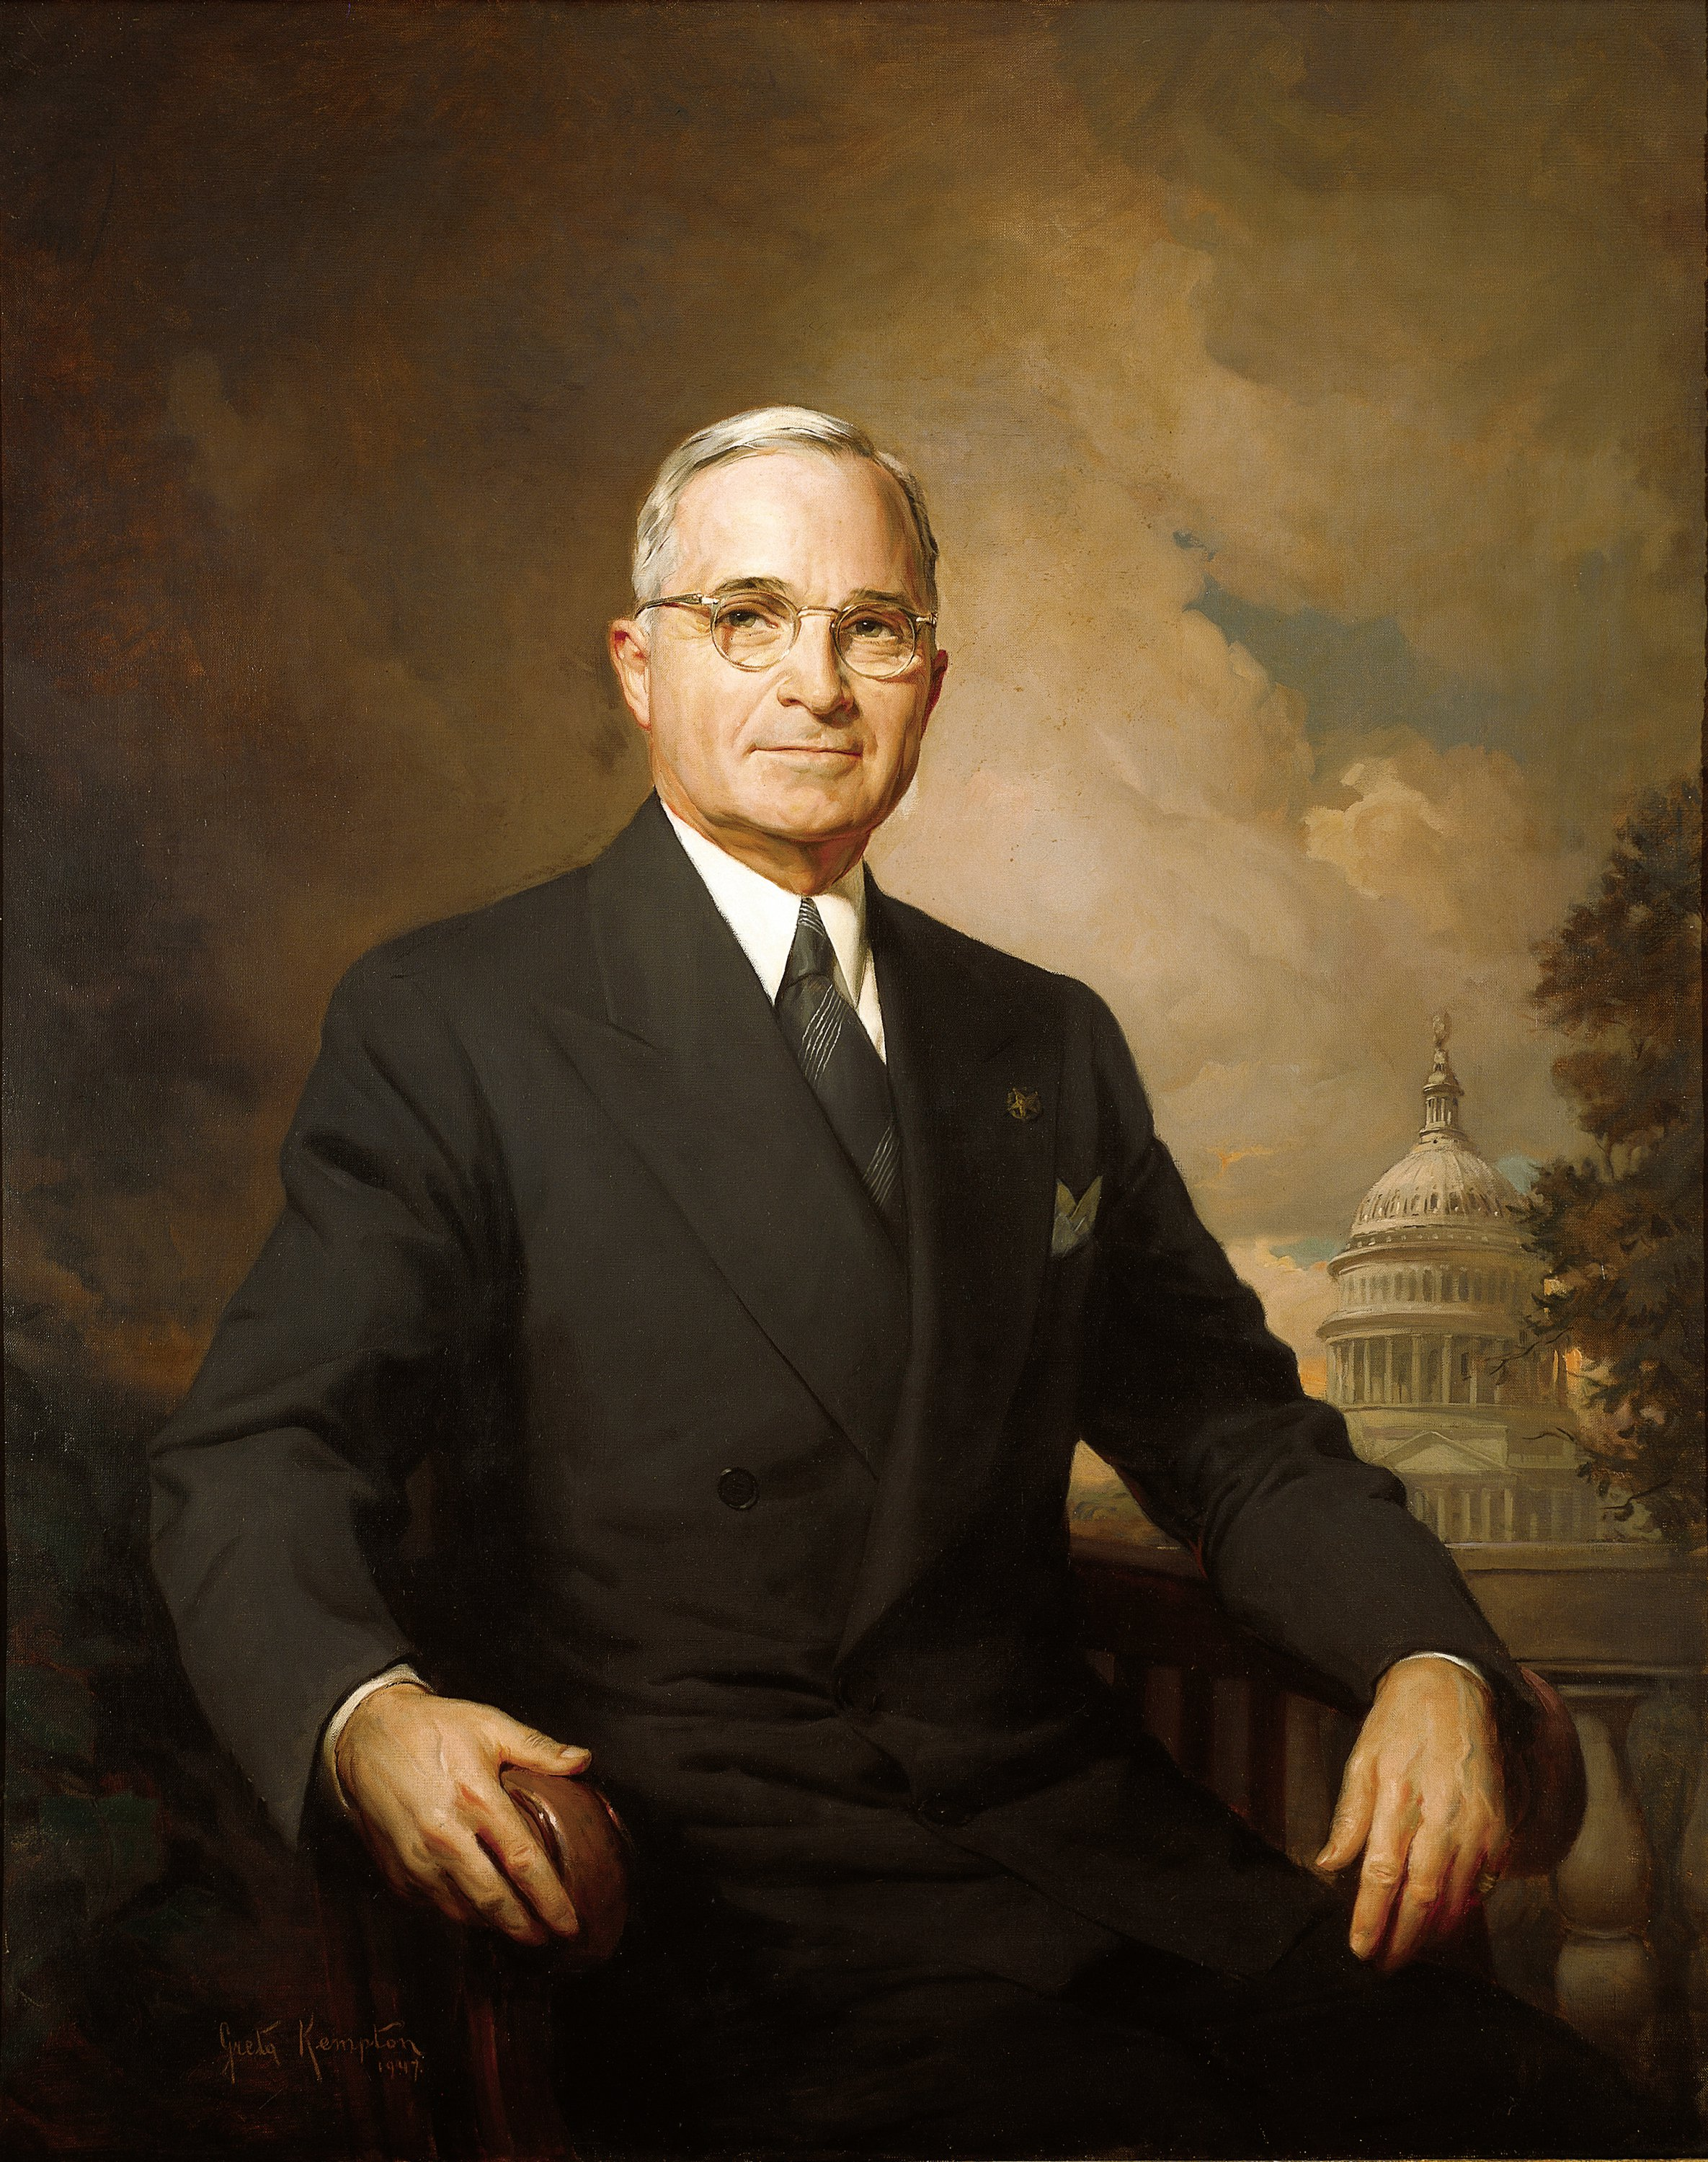 https://upload.wikimedia.org/wikipedia/commons/e/e6/HarryTruman.jpg